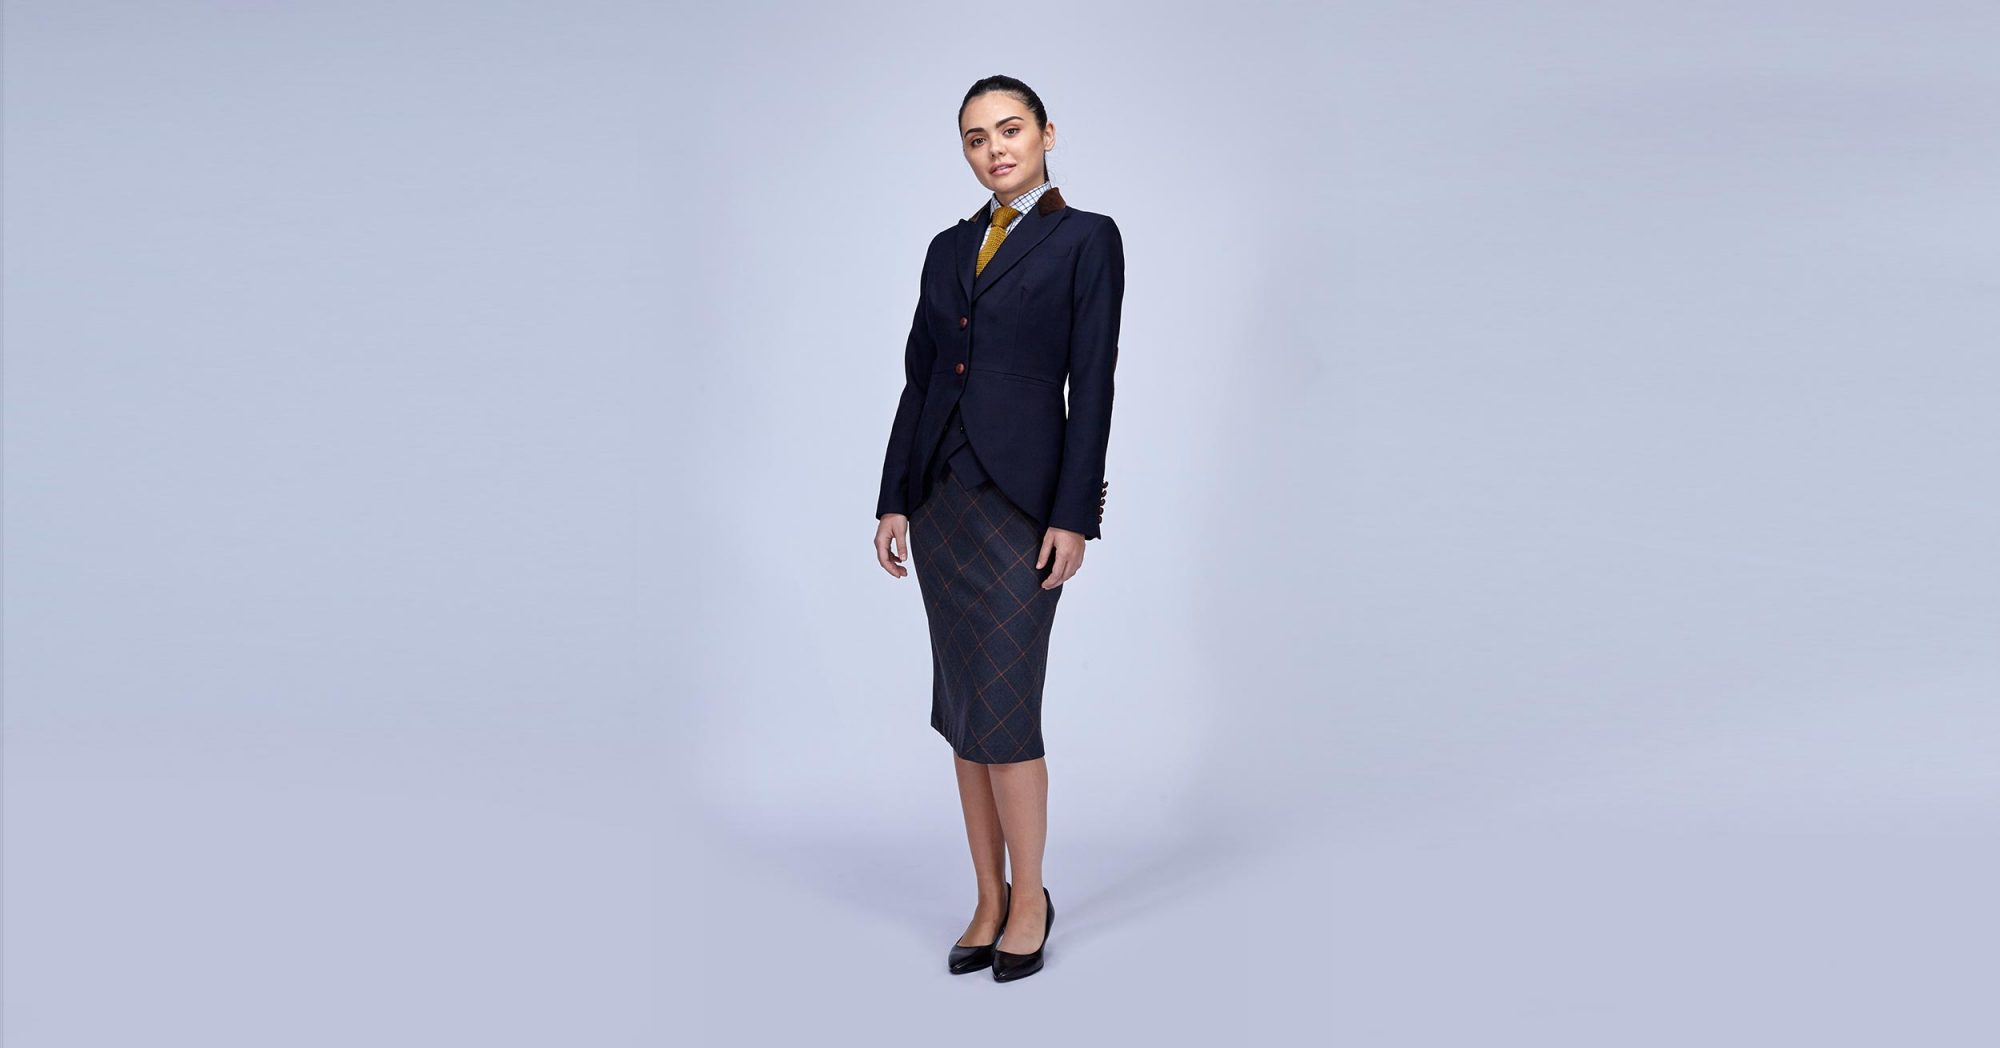 RWL_concierge_female